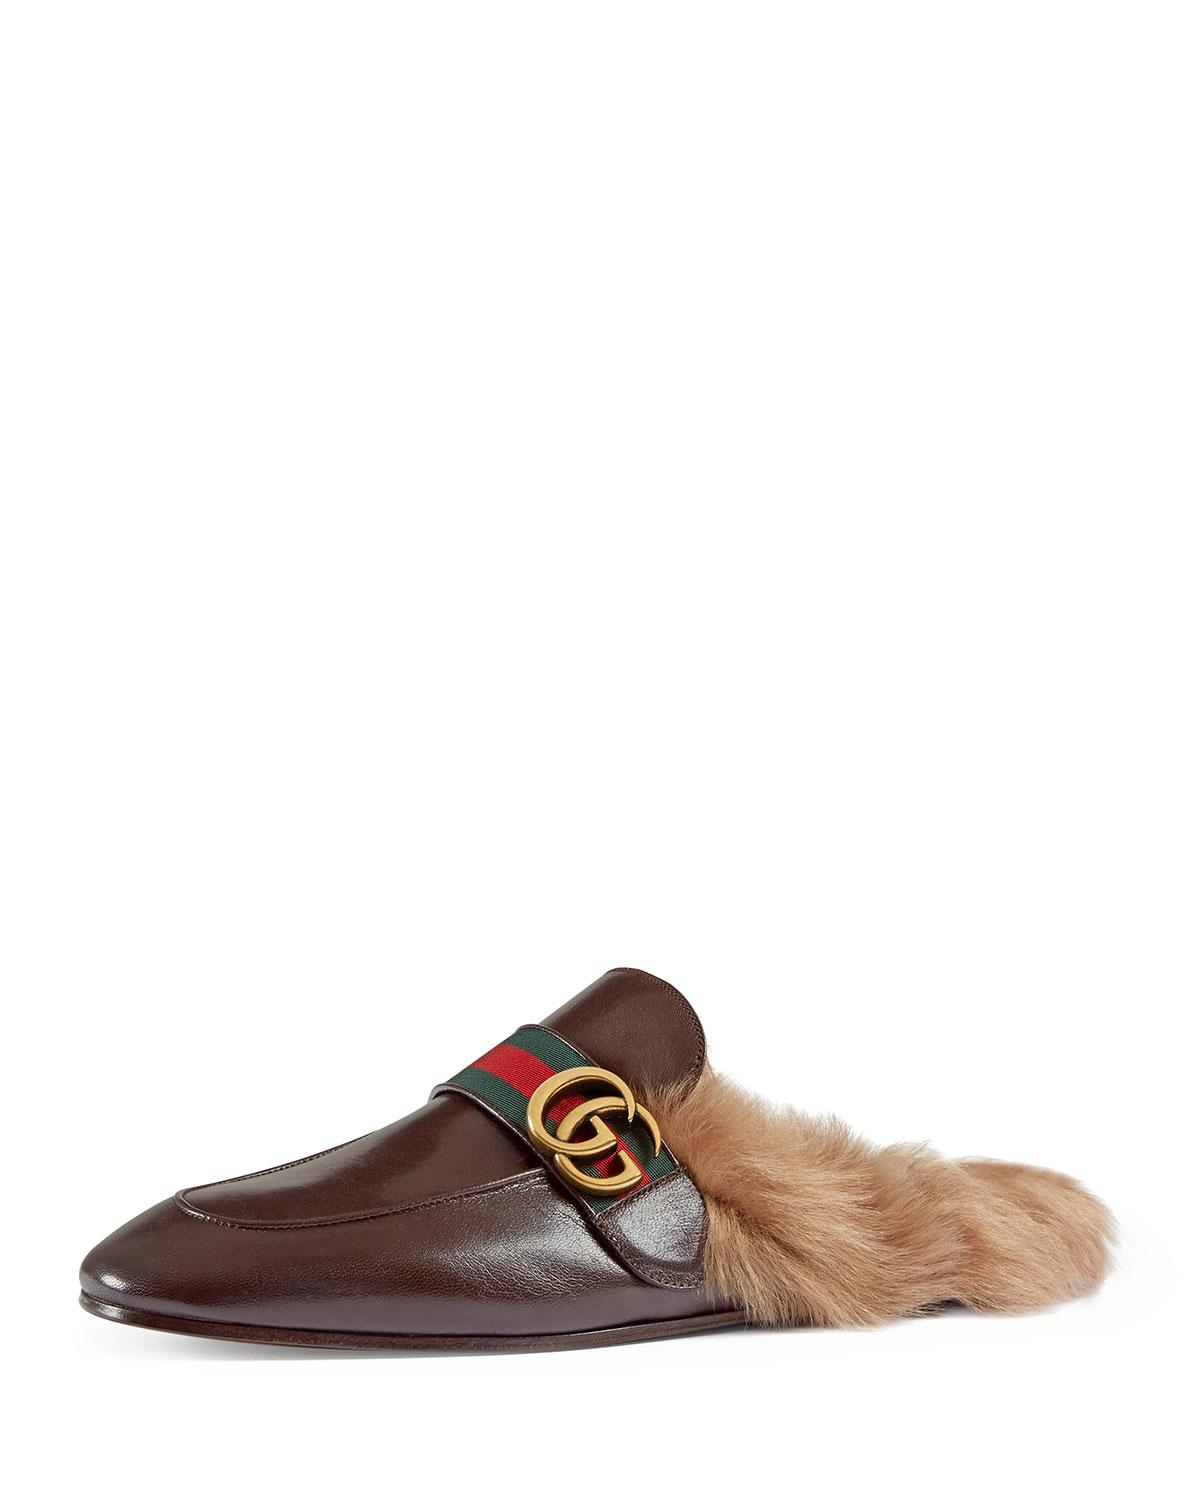 0071396c5ed Lyst - Gucci New Princetown Leather Fur-lined Slipper With Double G ...